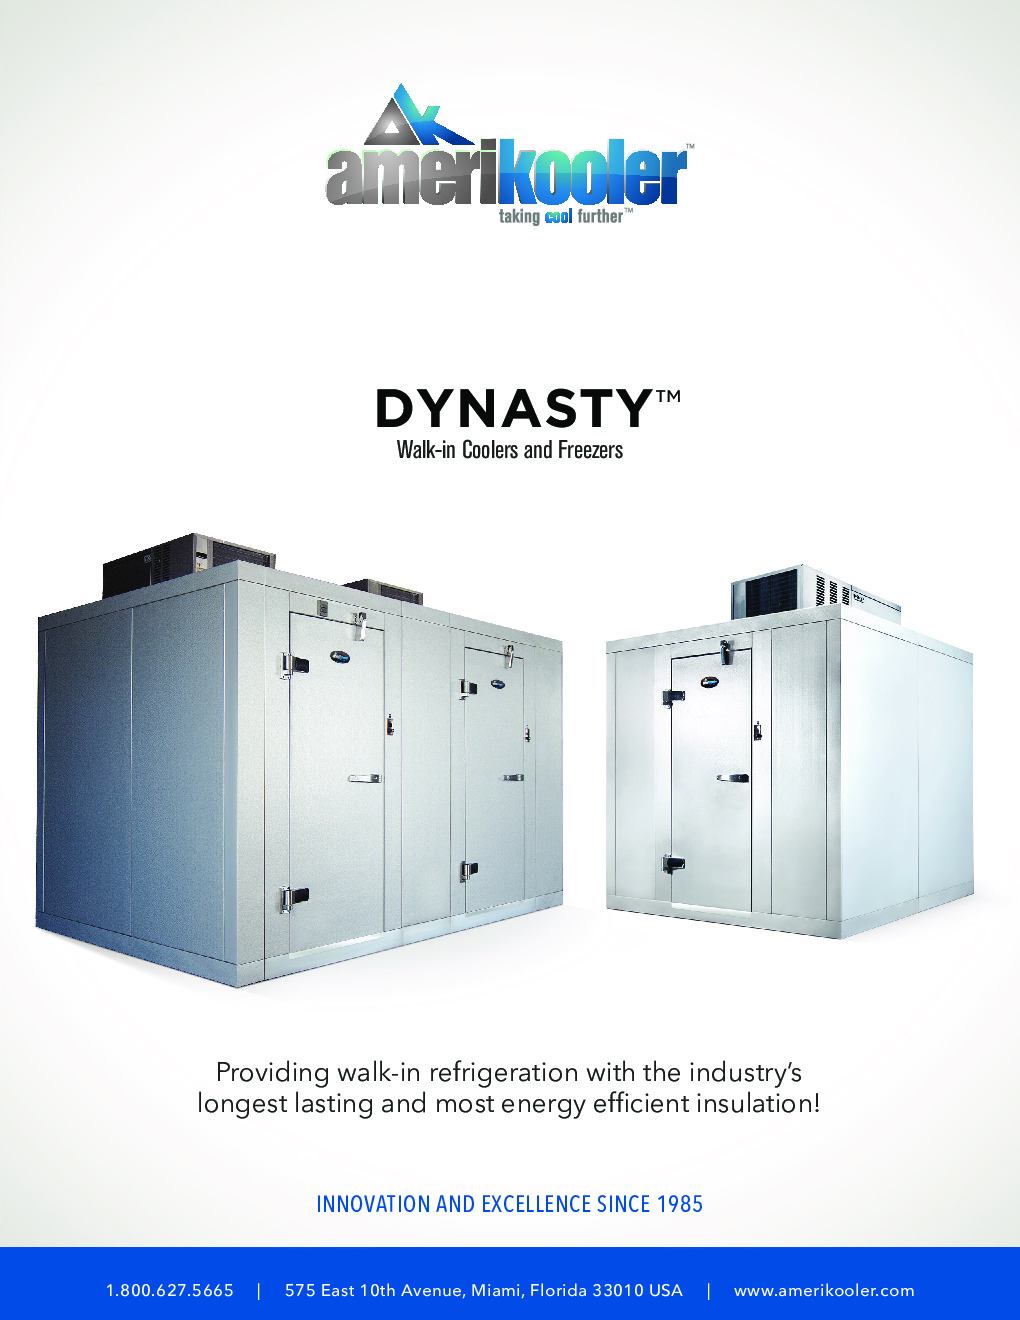 AmeriKooler DW091177N-4/7-RM 9' X 11' Walk-In Cooler, 7' L Cooler without Floor and 4' L Freezer, Remote